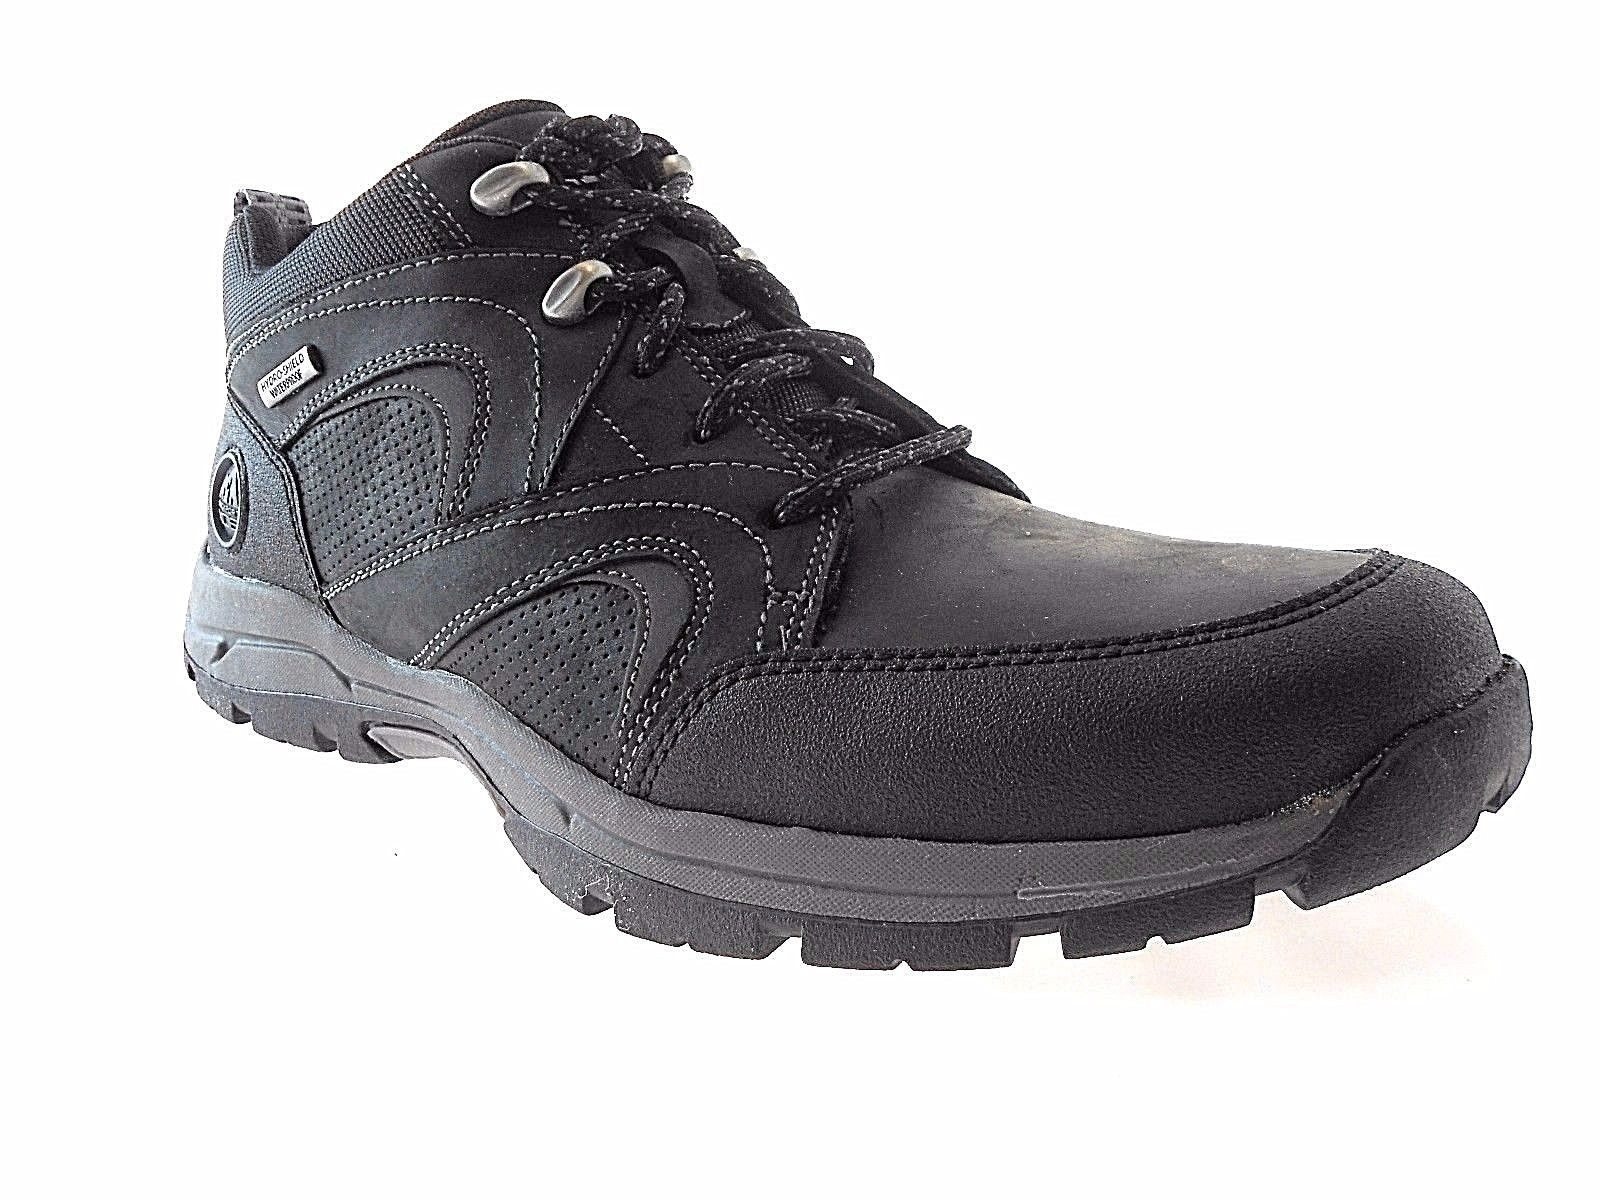 Primary image for ROCKPORT ROAD&TRAIL WP MDGD MEN'S BLACK NUBUCK WATERPROOF BOOTS M79561